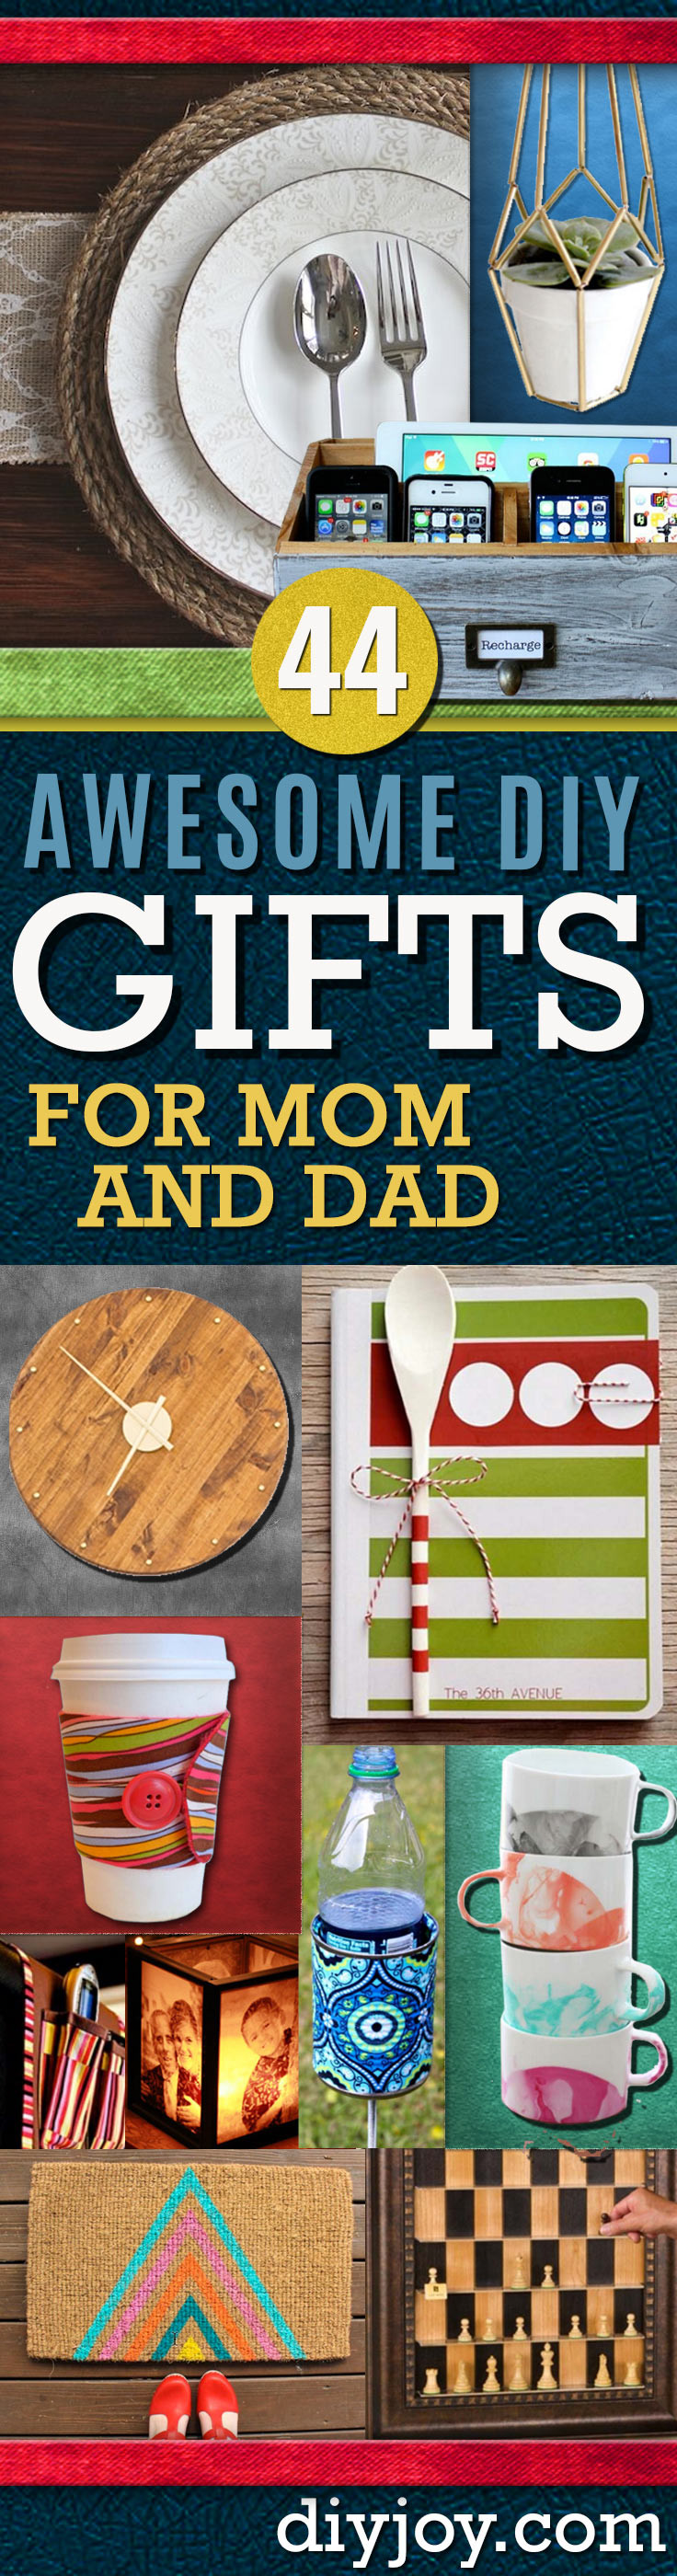 Best ideas about DIY Christmas Presents For Moms . Save or Pin Awesome DIY Gift Ideas Mom and Dad Will Love Now.